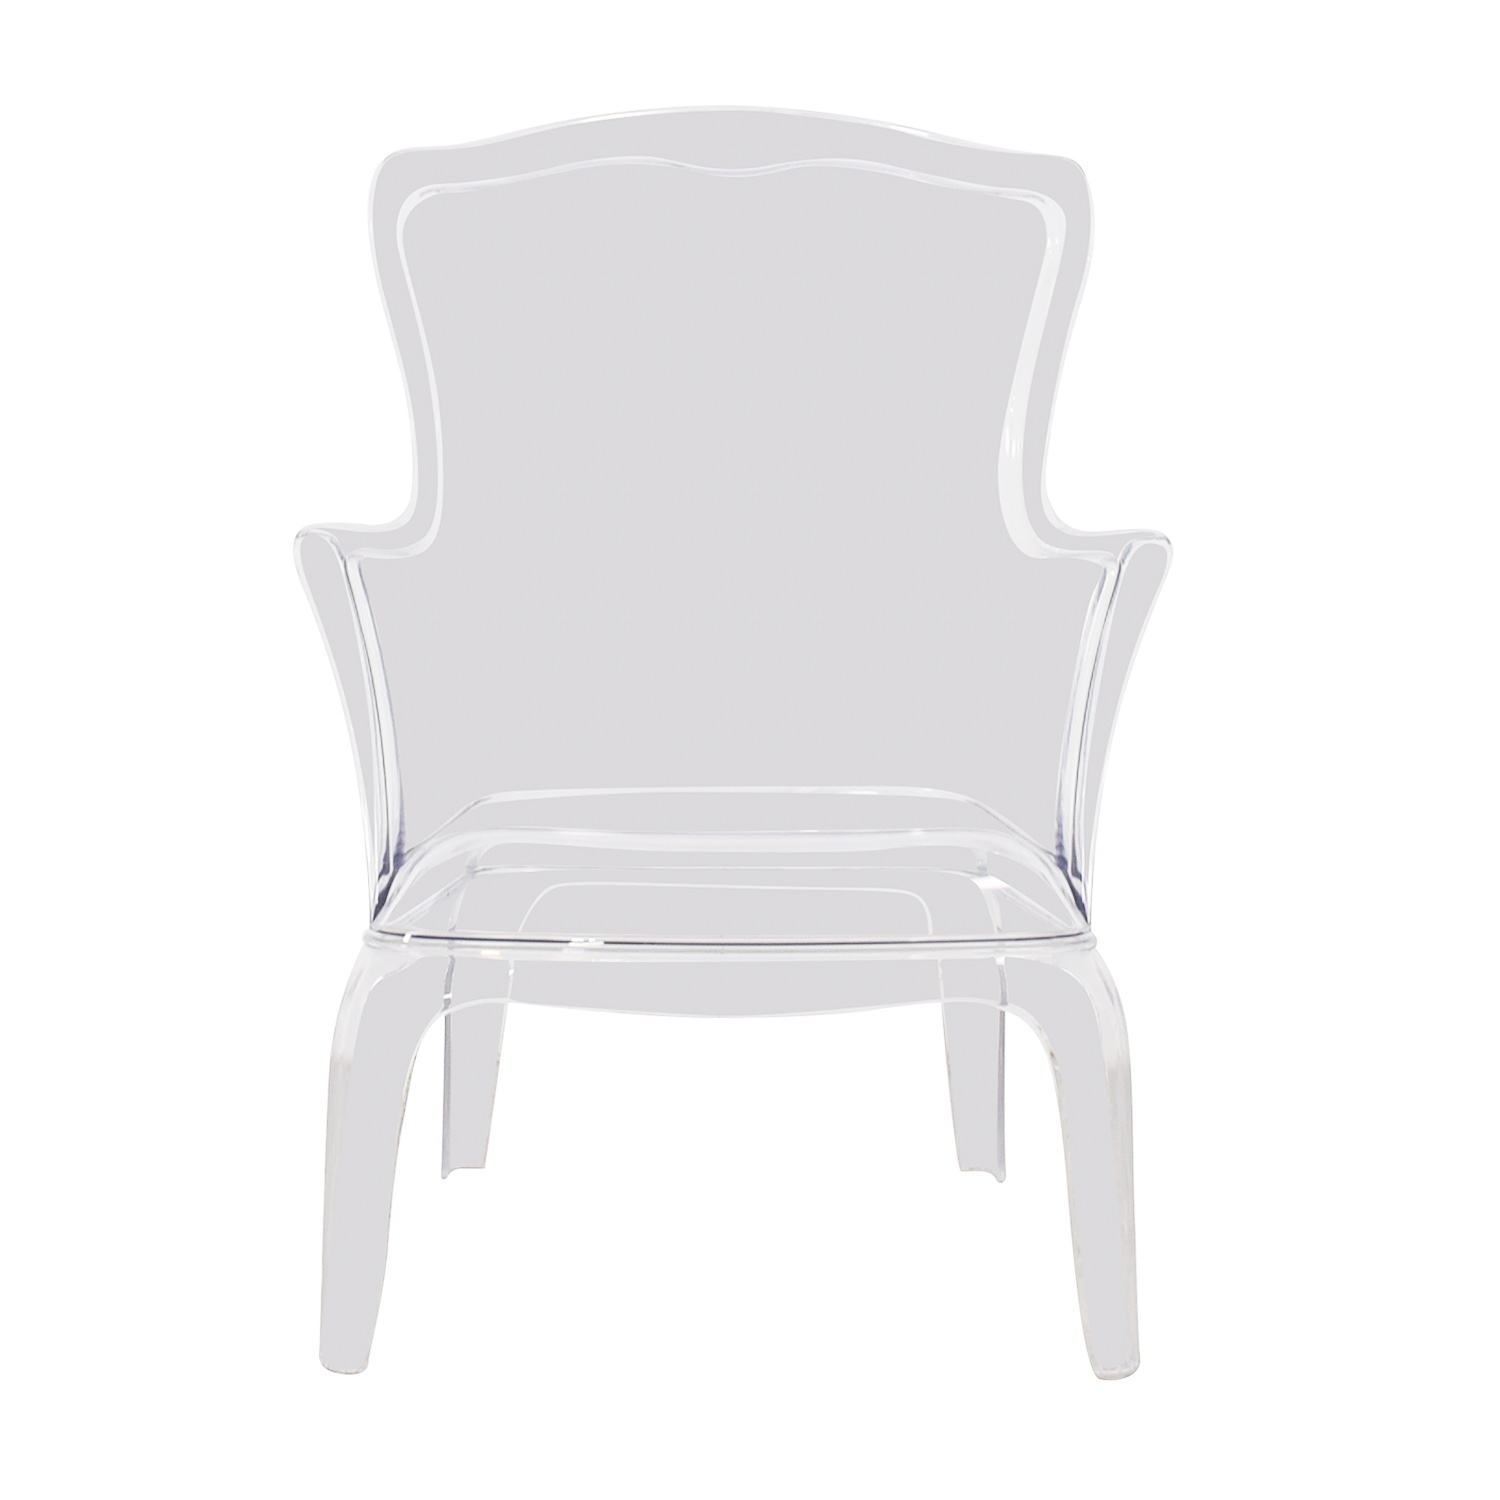 Zuo Modern Zuo Modern Transparent Vision Chair price